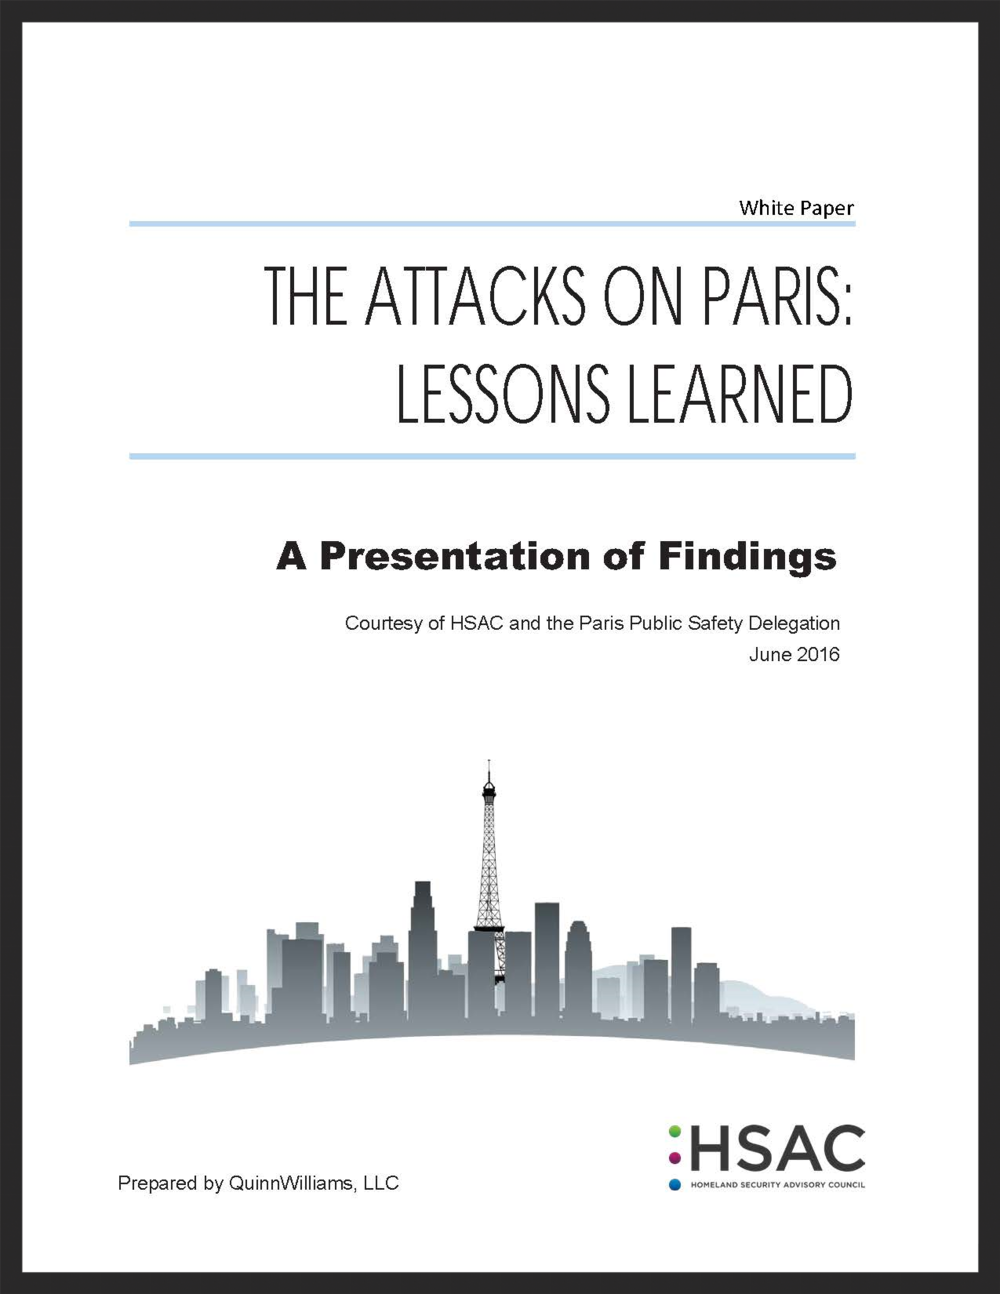 Click to download the HSAC White Paper on Lessons Learned from Paris Attacks